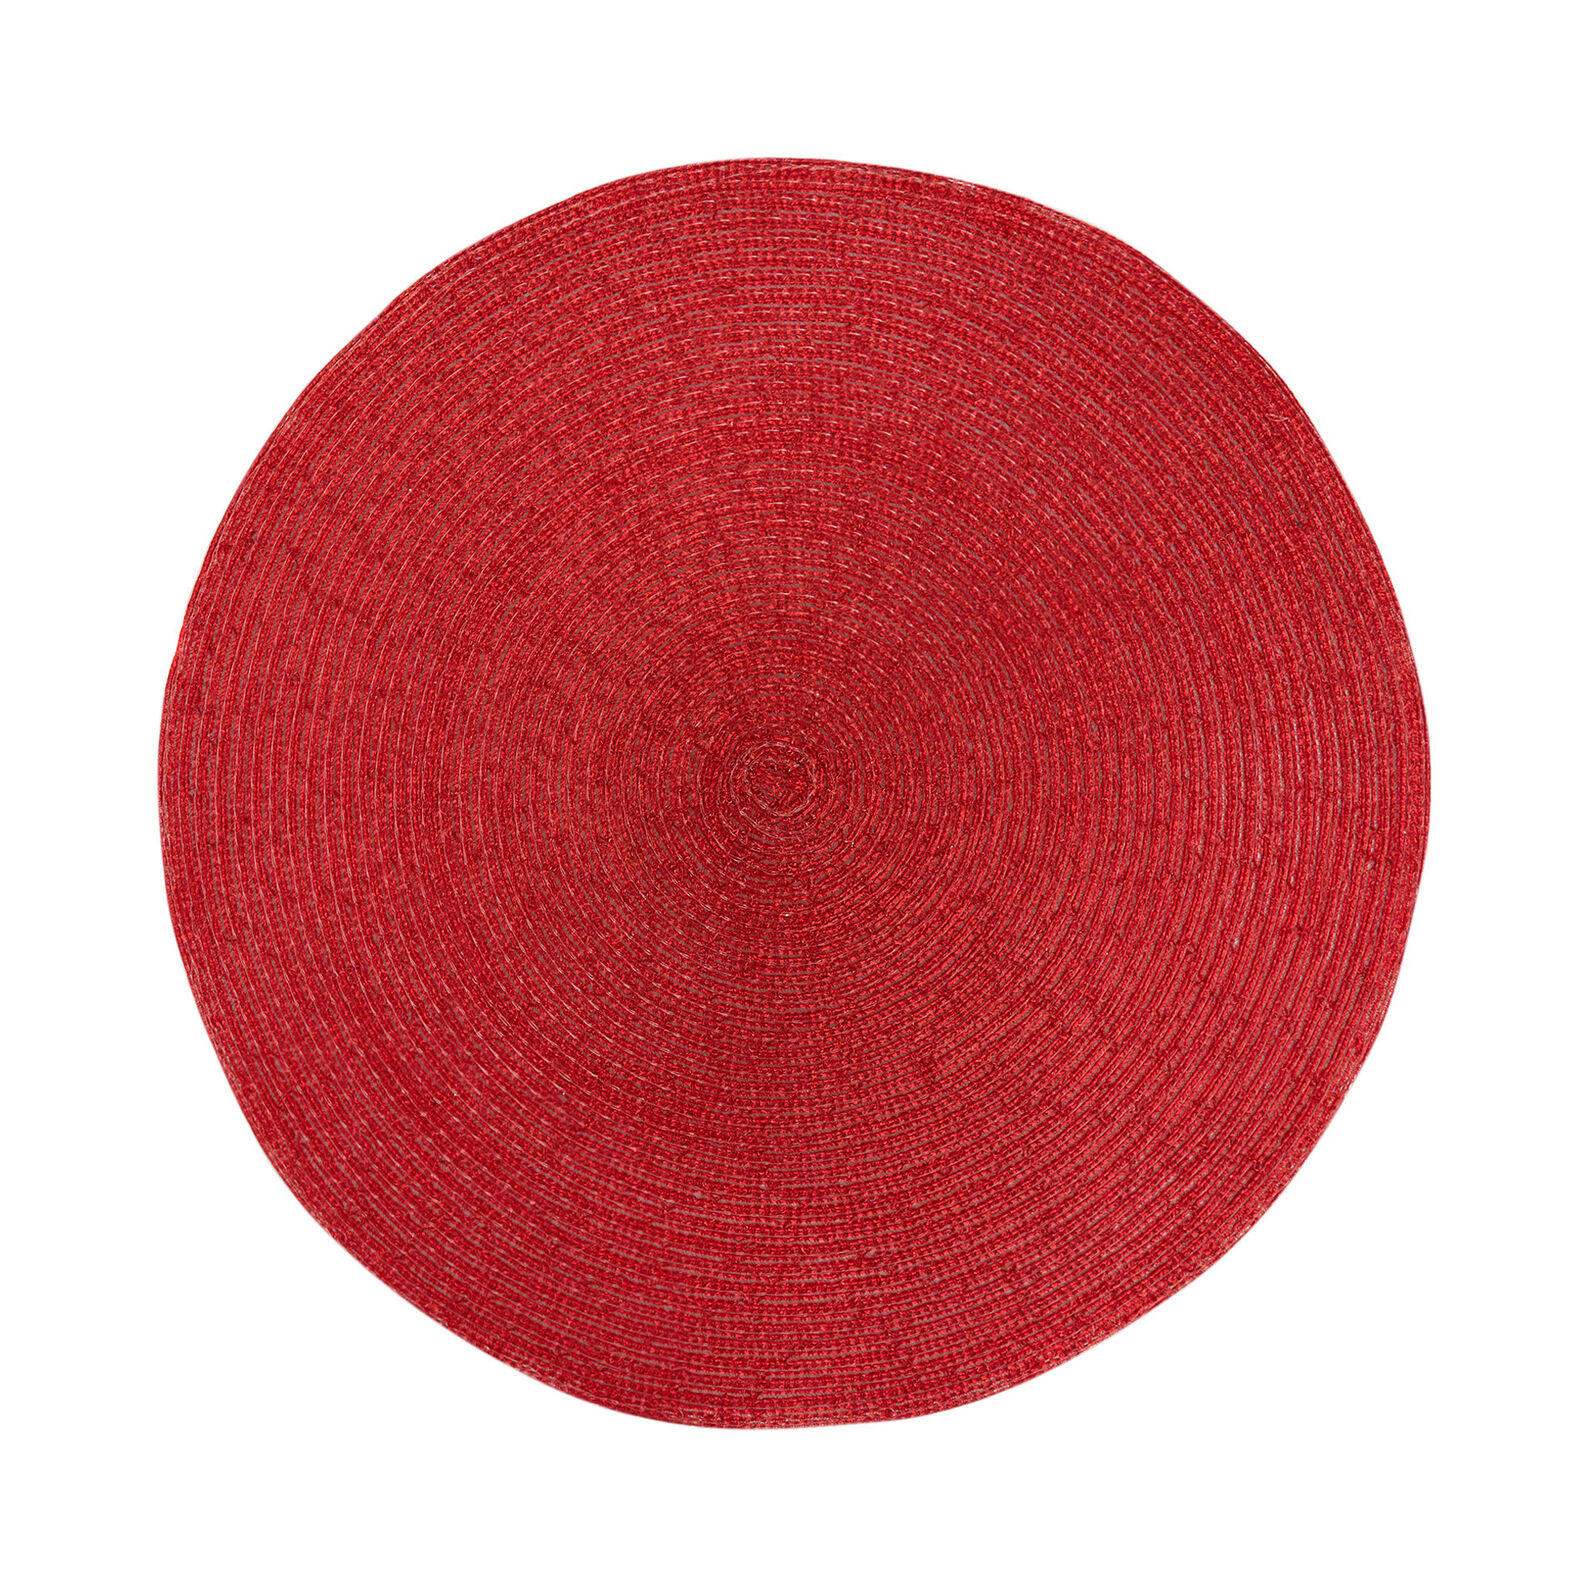 Table mat in red plastic